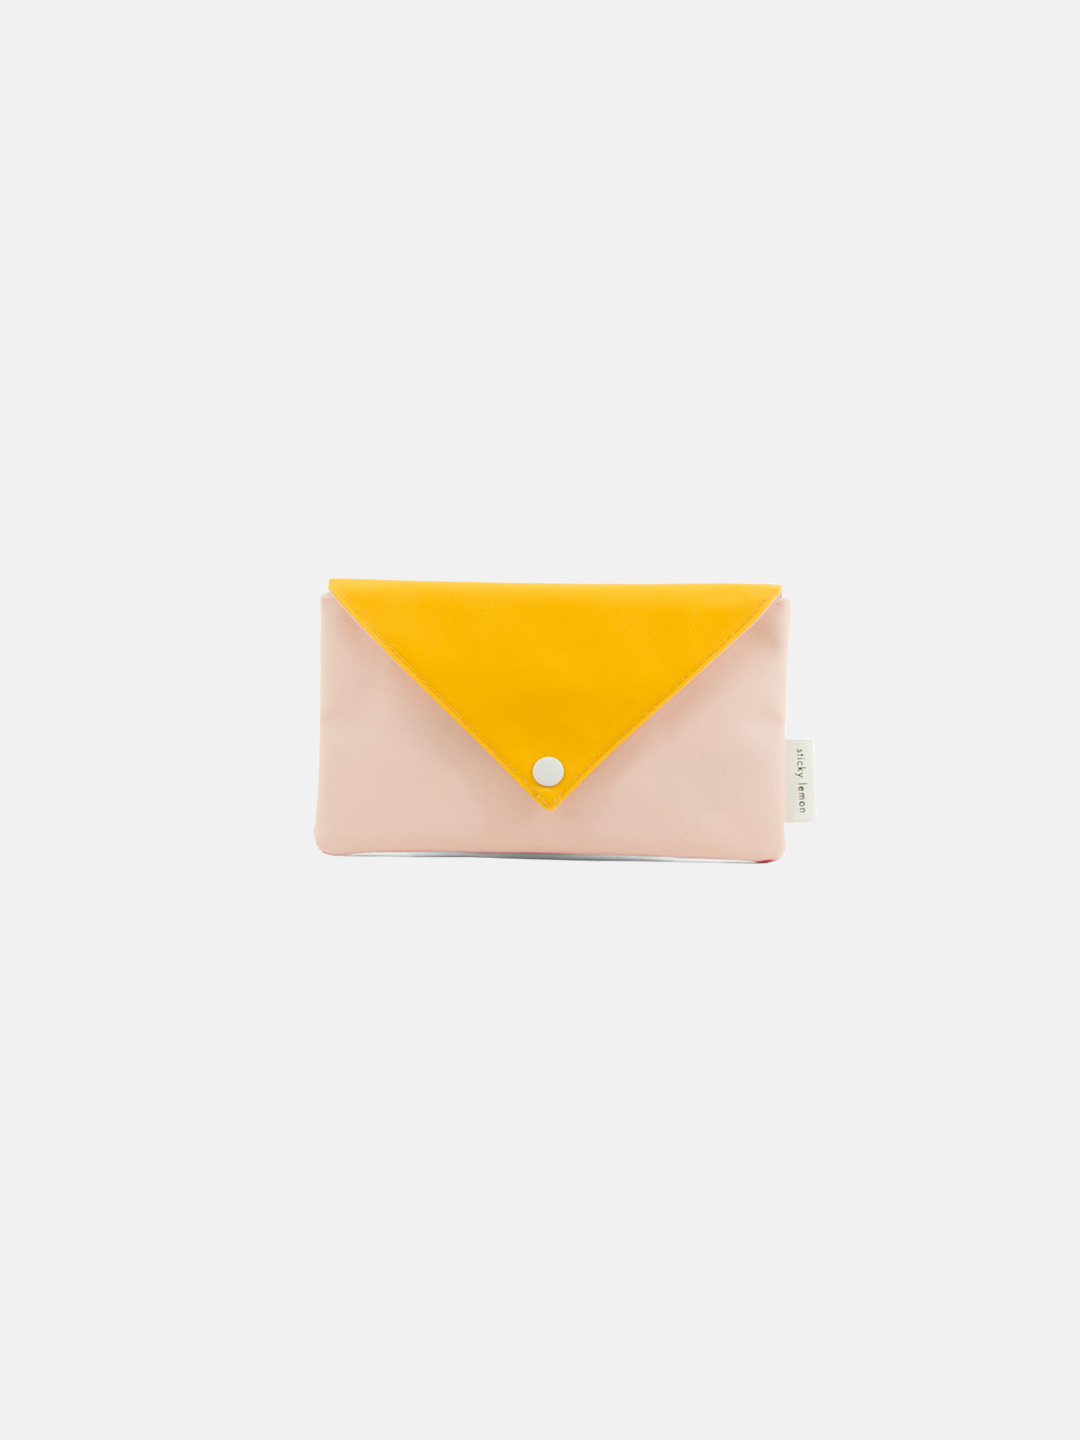 Pencil Case - Envelope Soft Pink